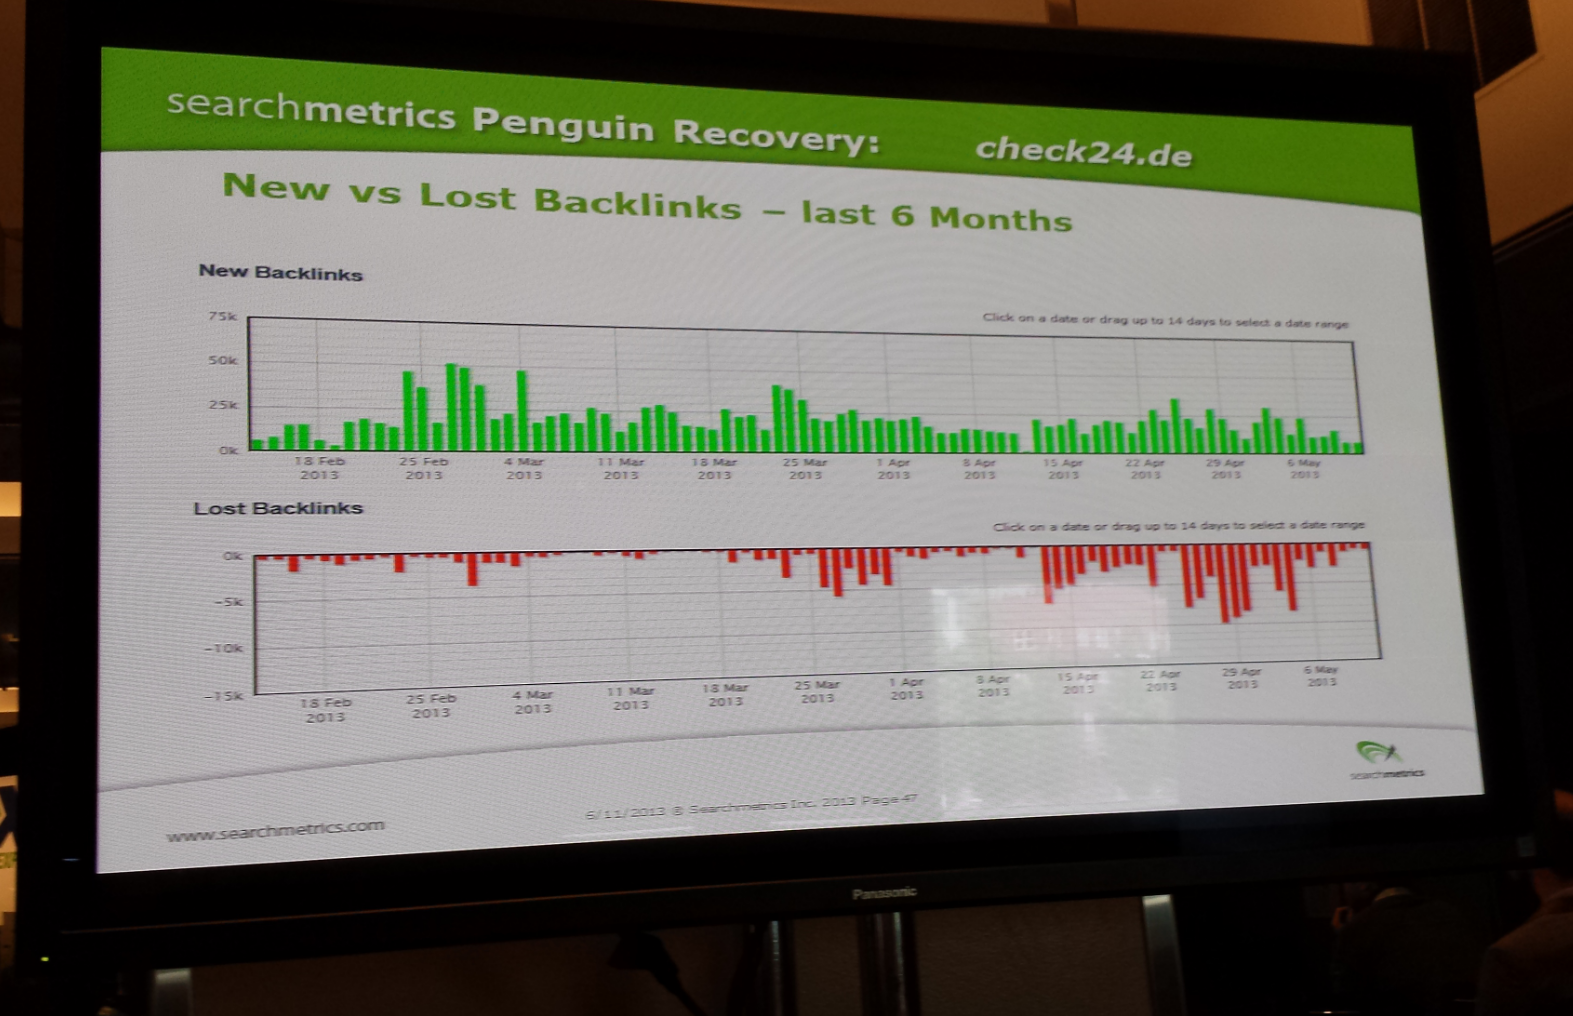 Live from smx advanced the periodic table of seo ranking factors 2013 06 11 134316 gamestrikefo Image collections